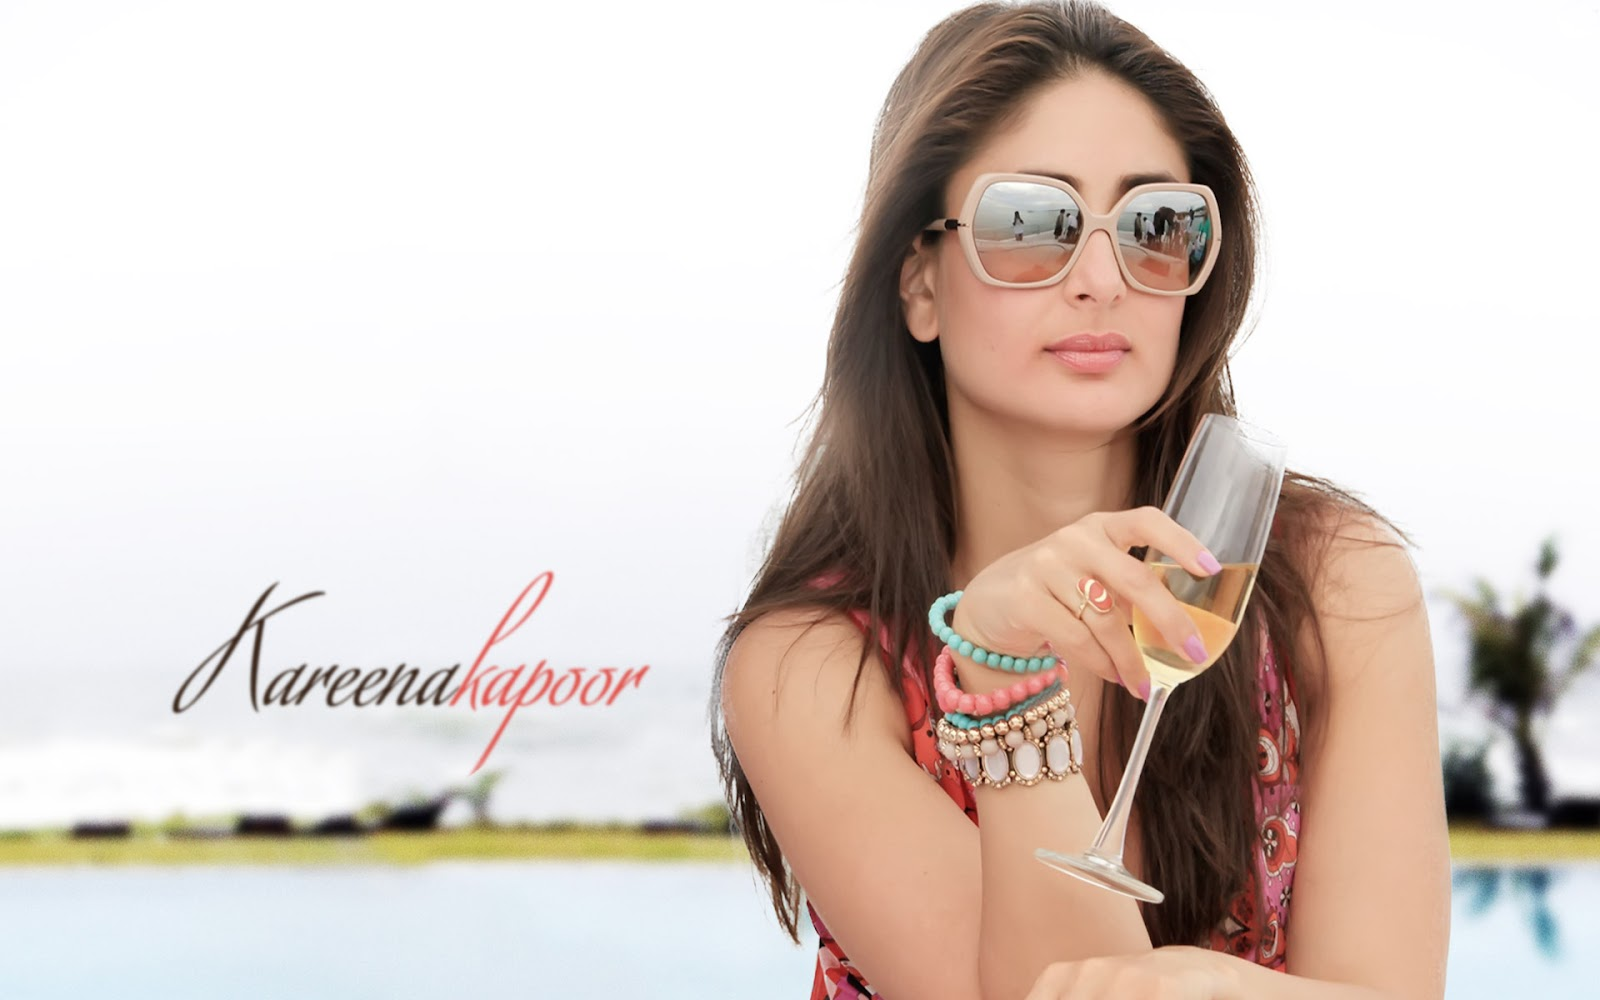 Kareena Kapoor Hot  Sexy Bikini 1080P Hd Wallpaper And -3048